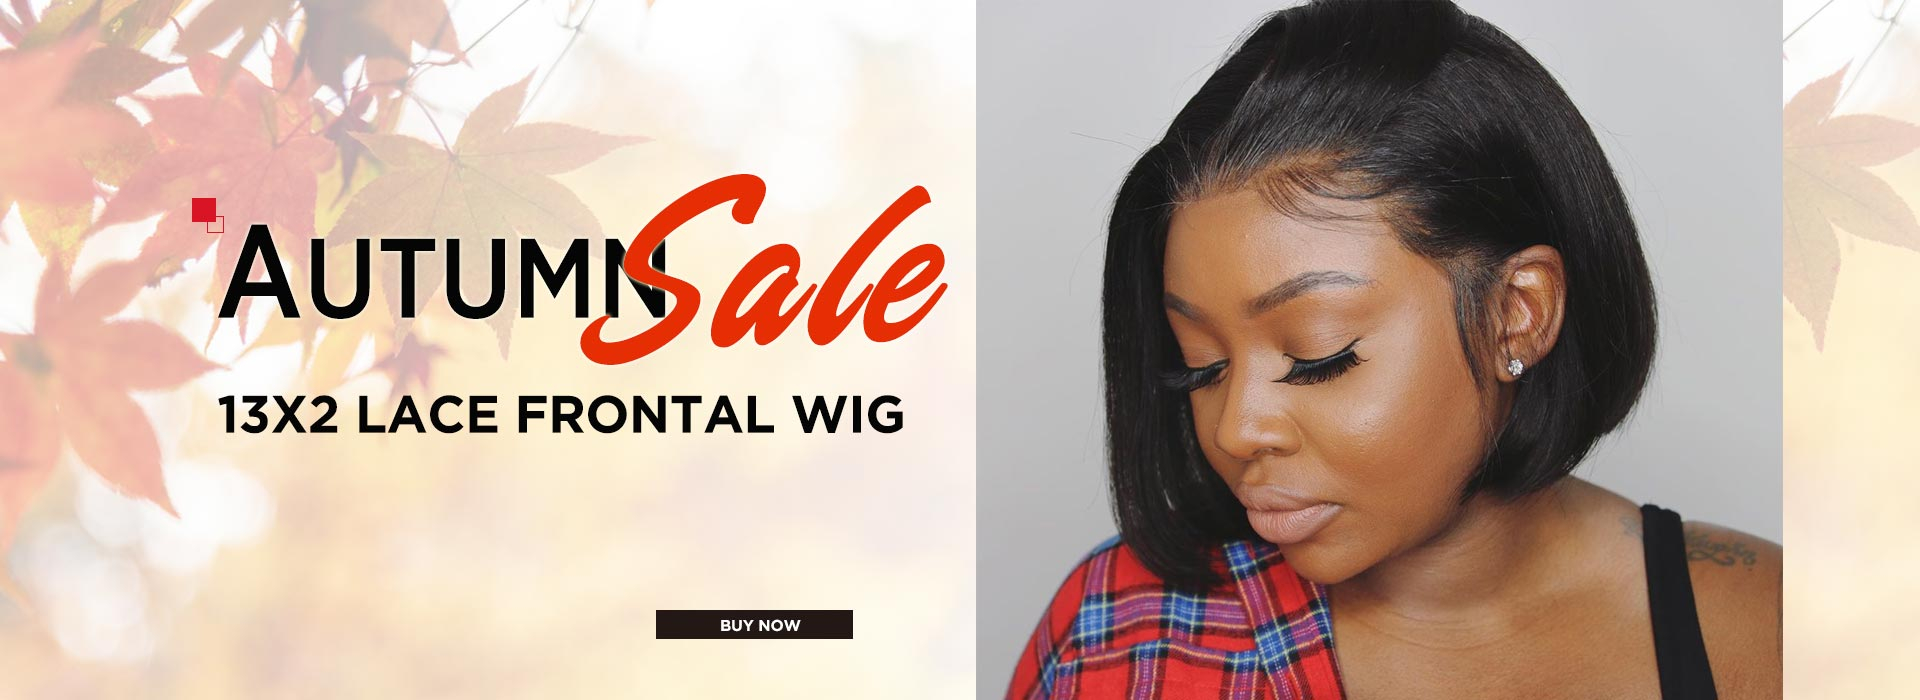 13X2 lace front wig